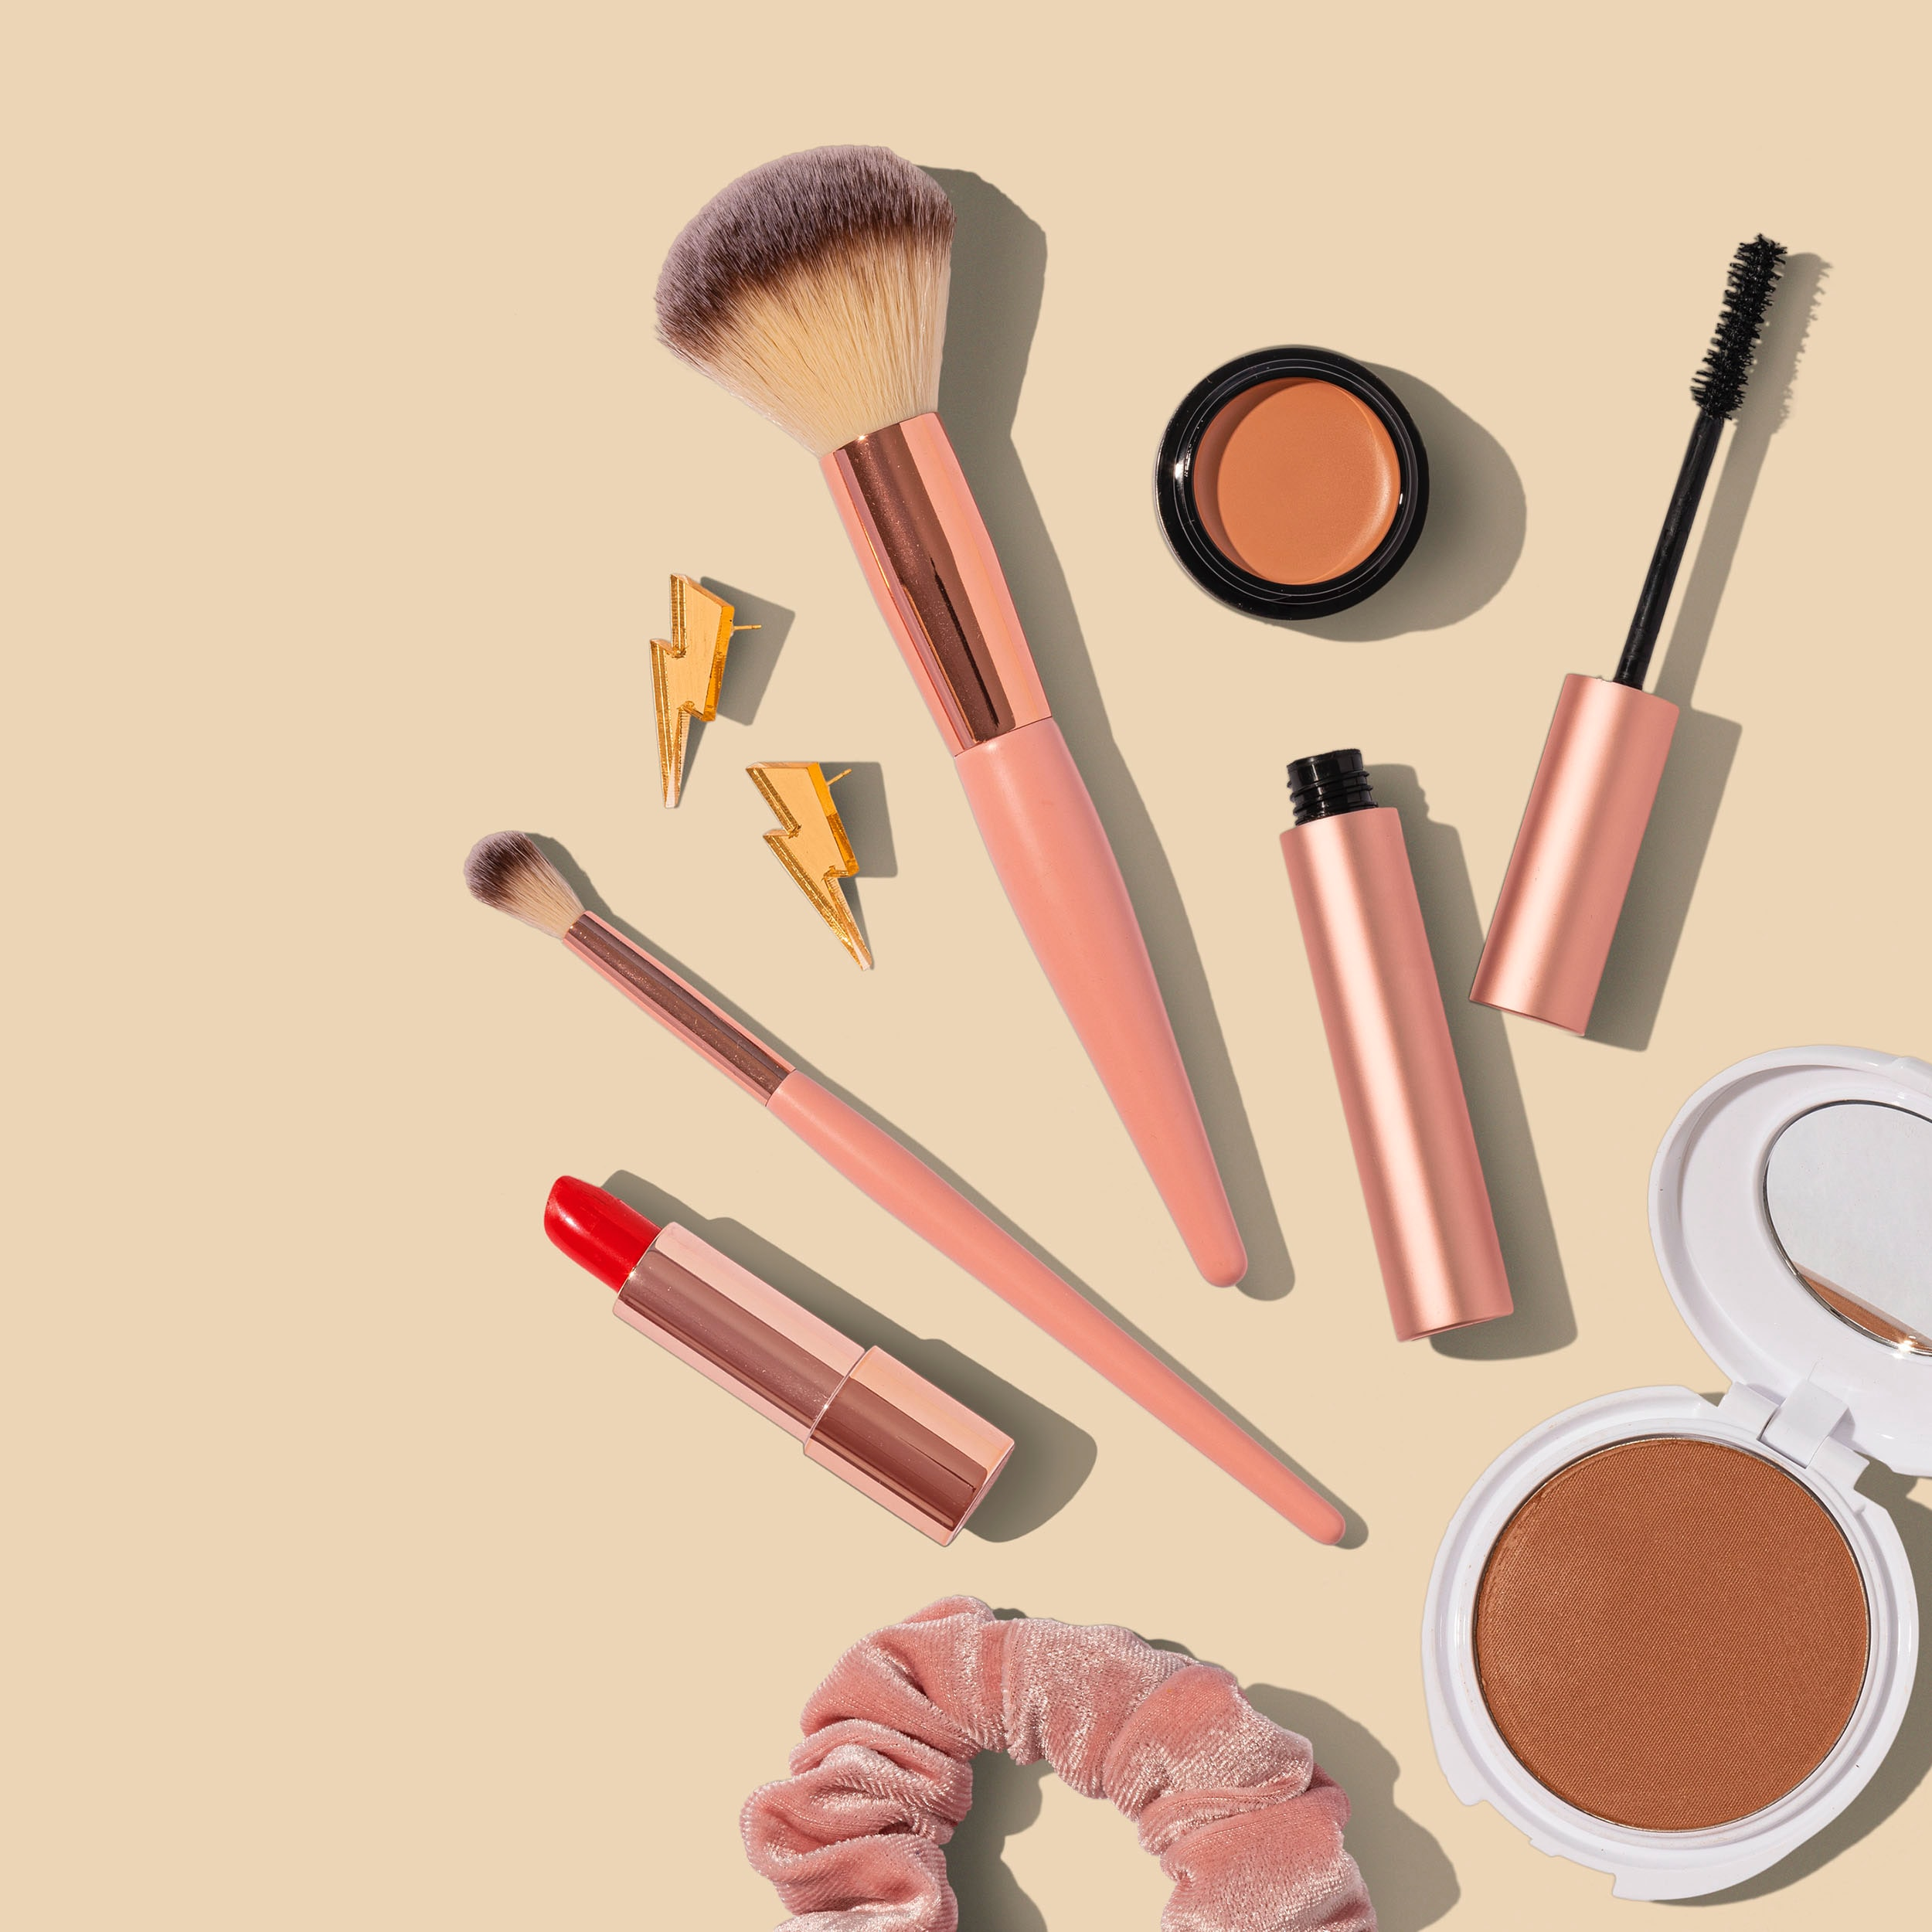 What's the difference between vegan, cruelty-free, natural, organic, clean and fair trade beauty?